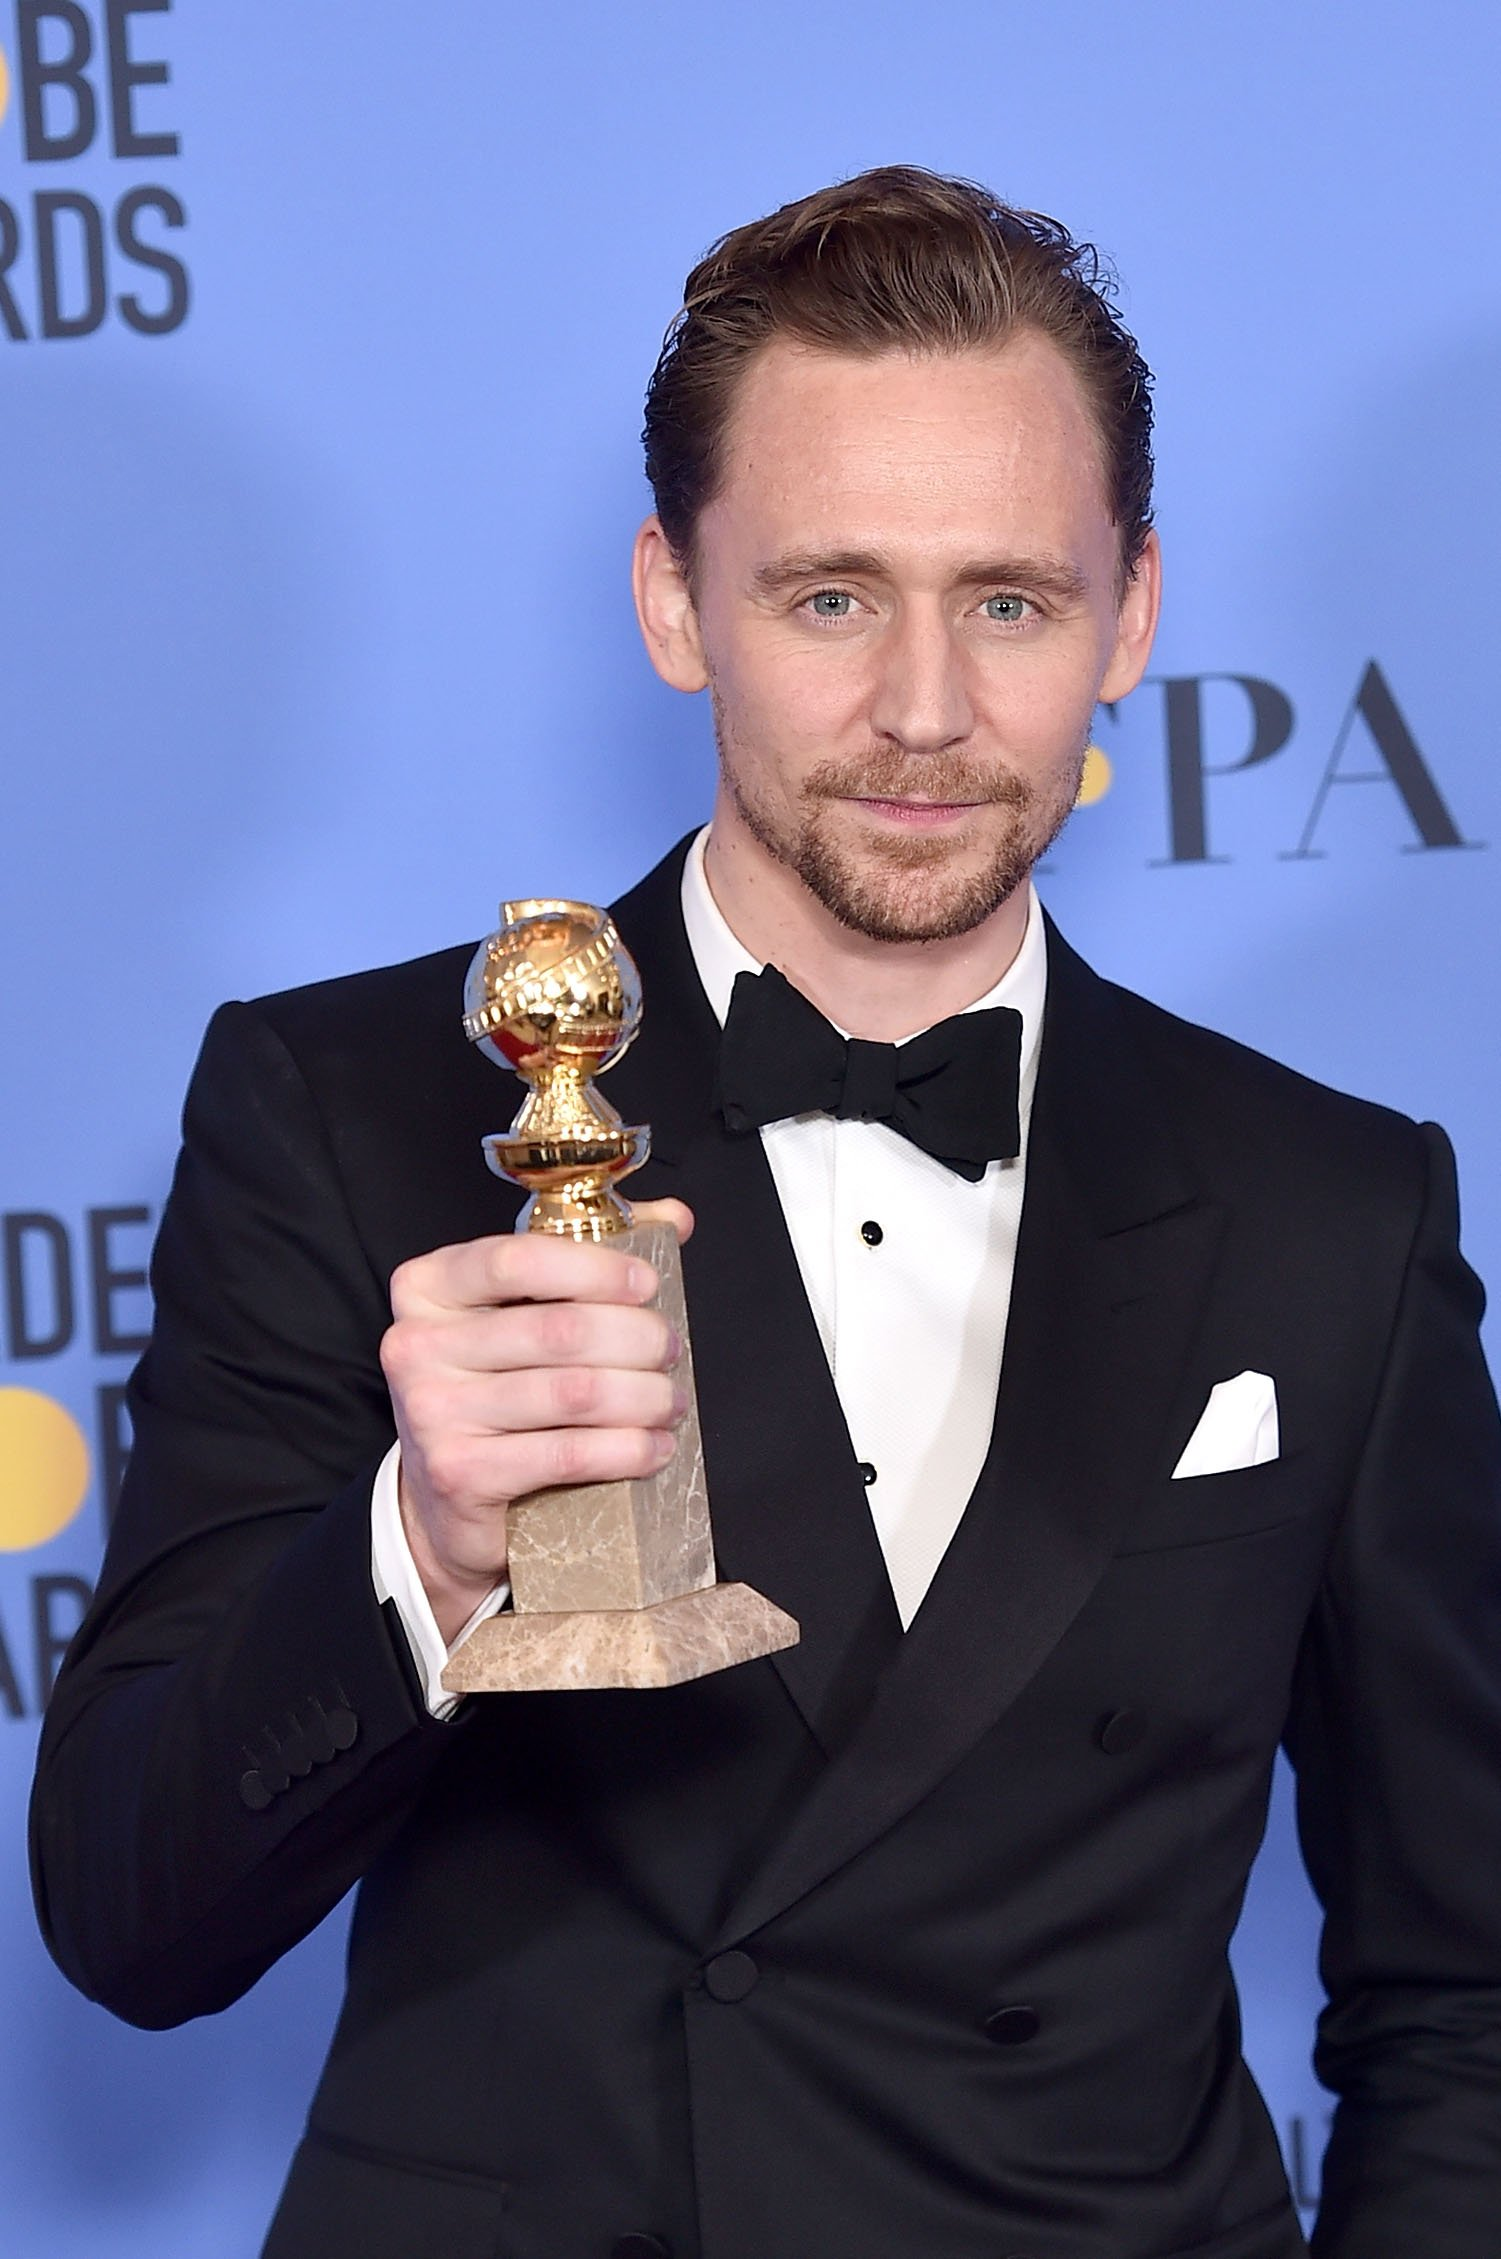 Tom Hiddleston, winner of Best Actor in a Miniseries or Television Film for 'The Night Manager,' poses in the press room during the 74th Annual Golden Globe Awards at The Beverly Hilton Hotel on January 8, 2017 in Beverly Hills